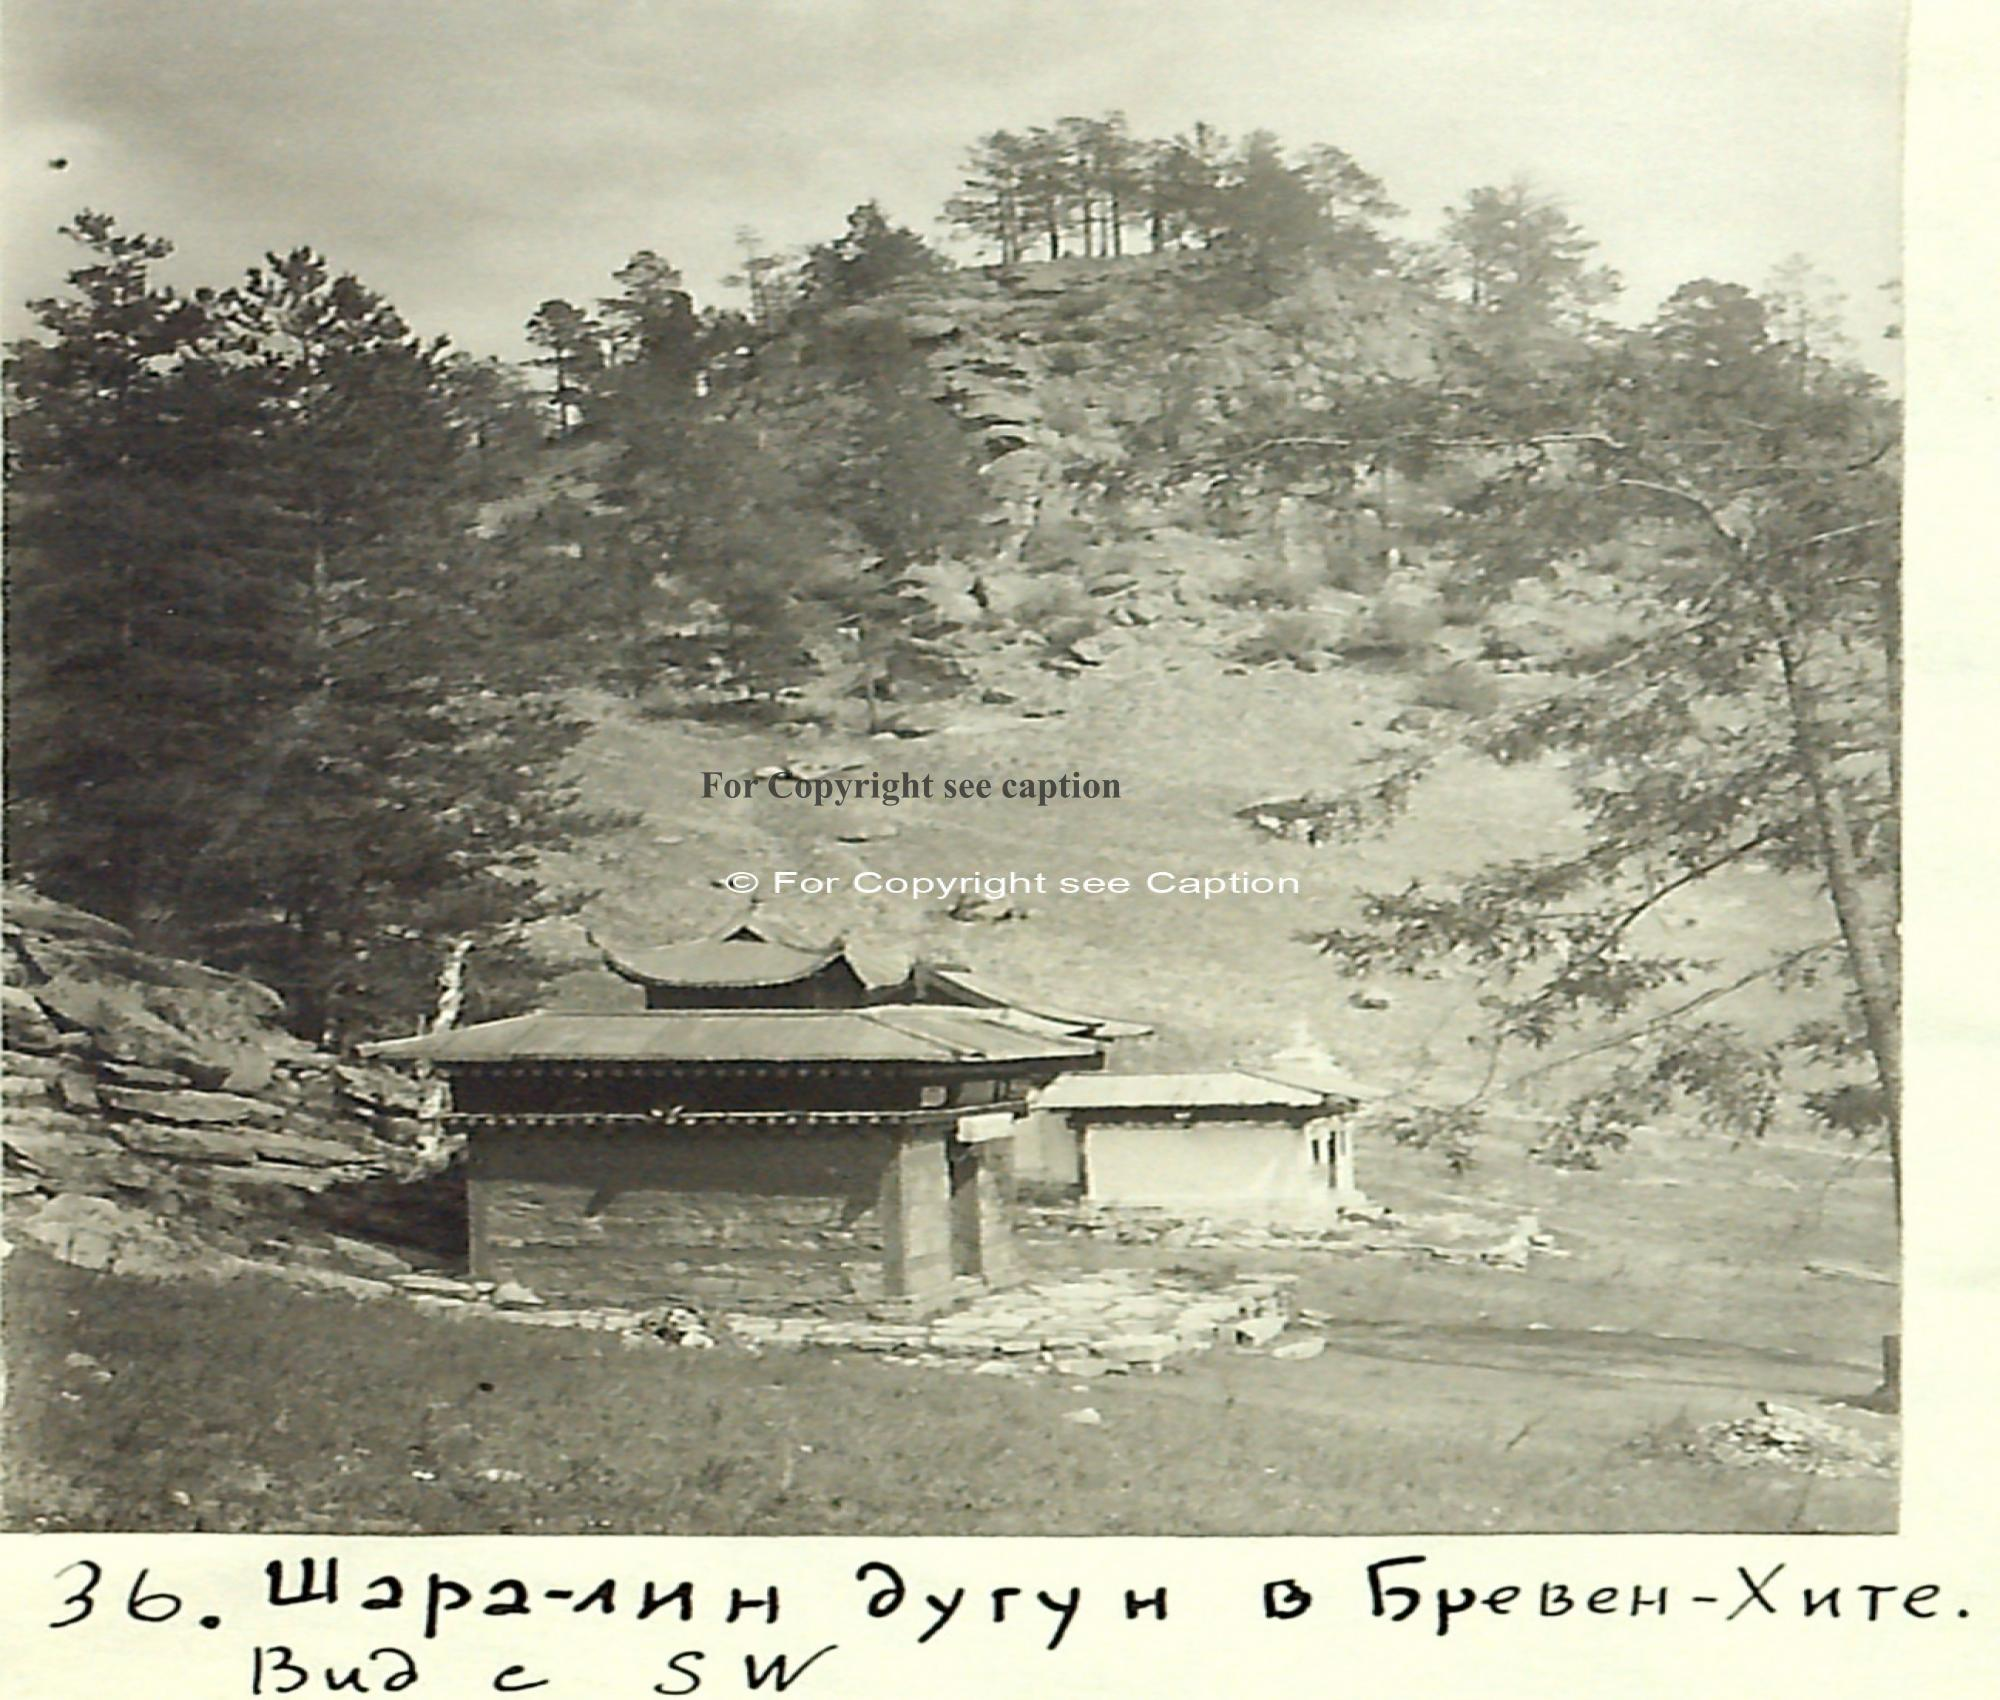 A small relic temple, Shariliin süm among the trees. Film Archives K-23655, taken by Kondratyev in t